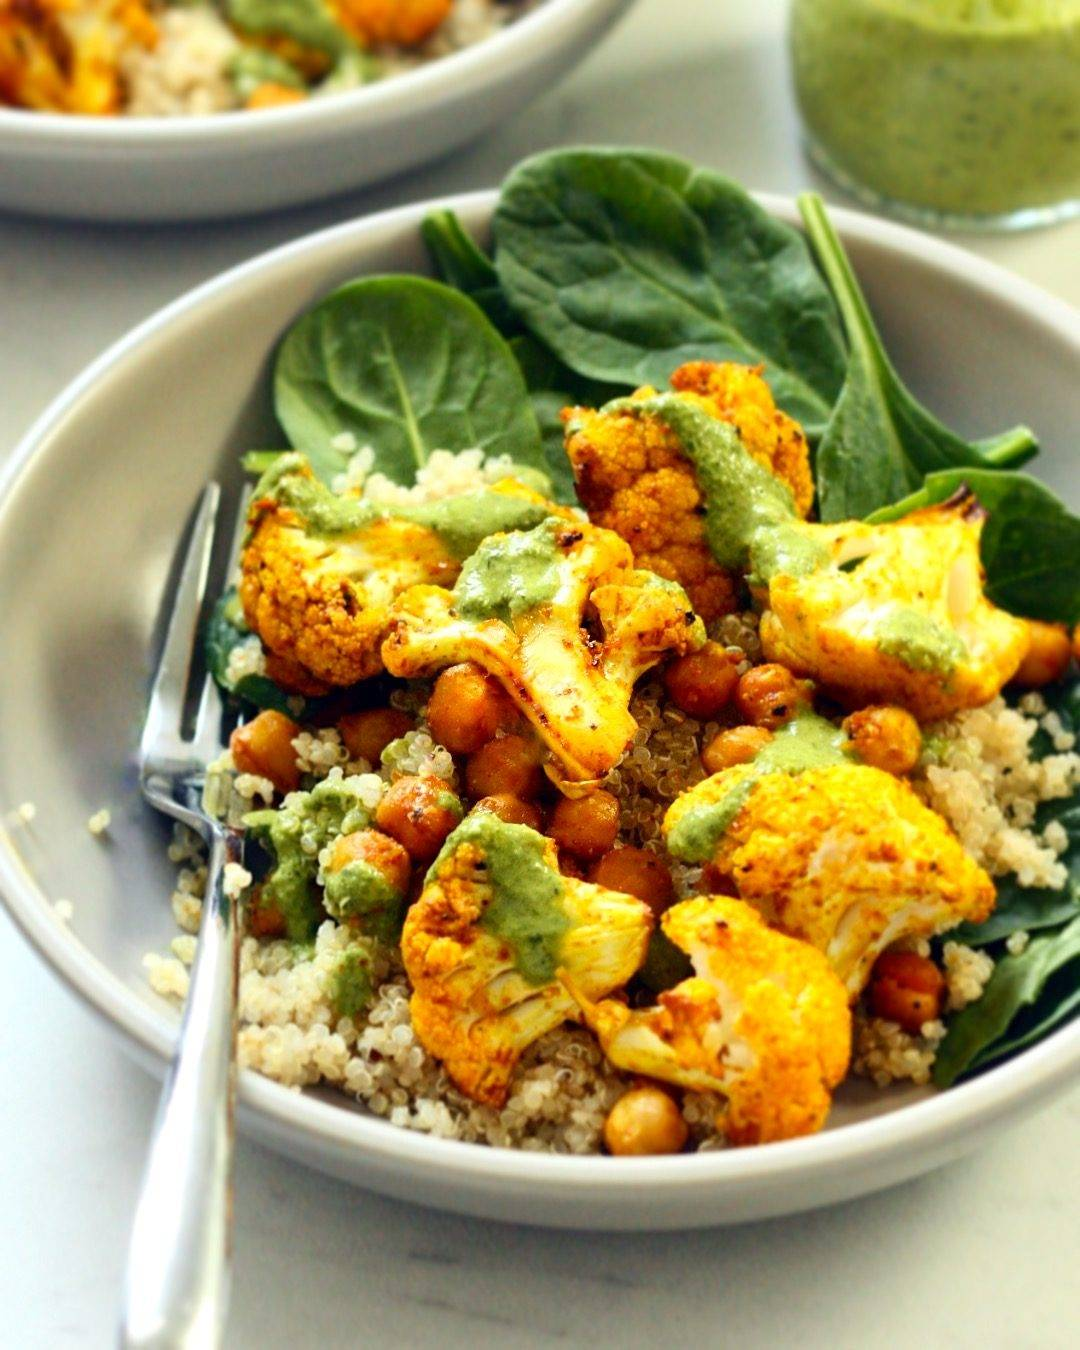 Golden Cauliflower Bowls with Lemon Parsley Vinaigrette